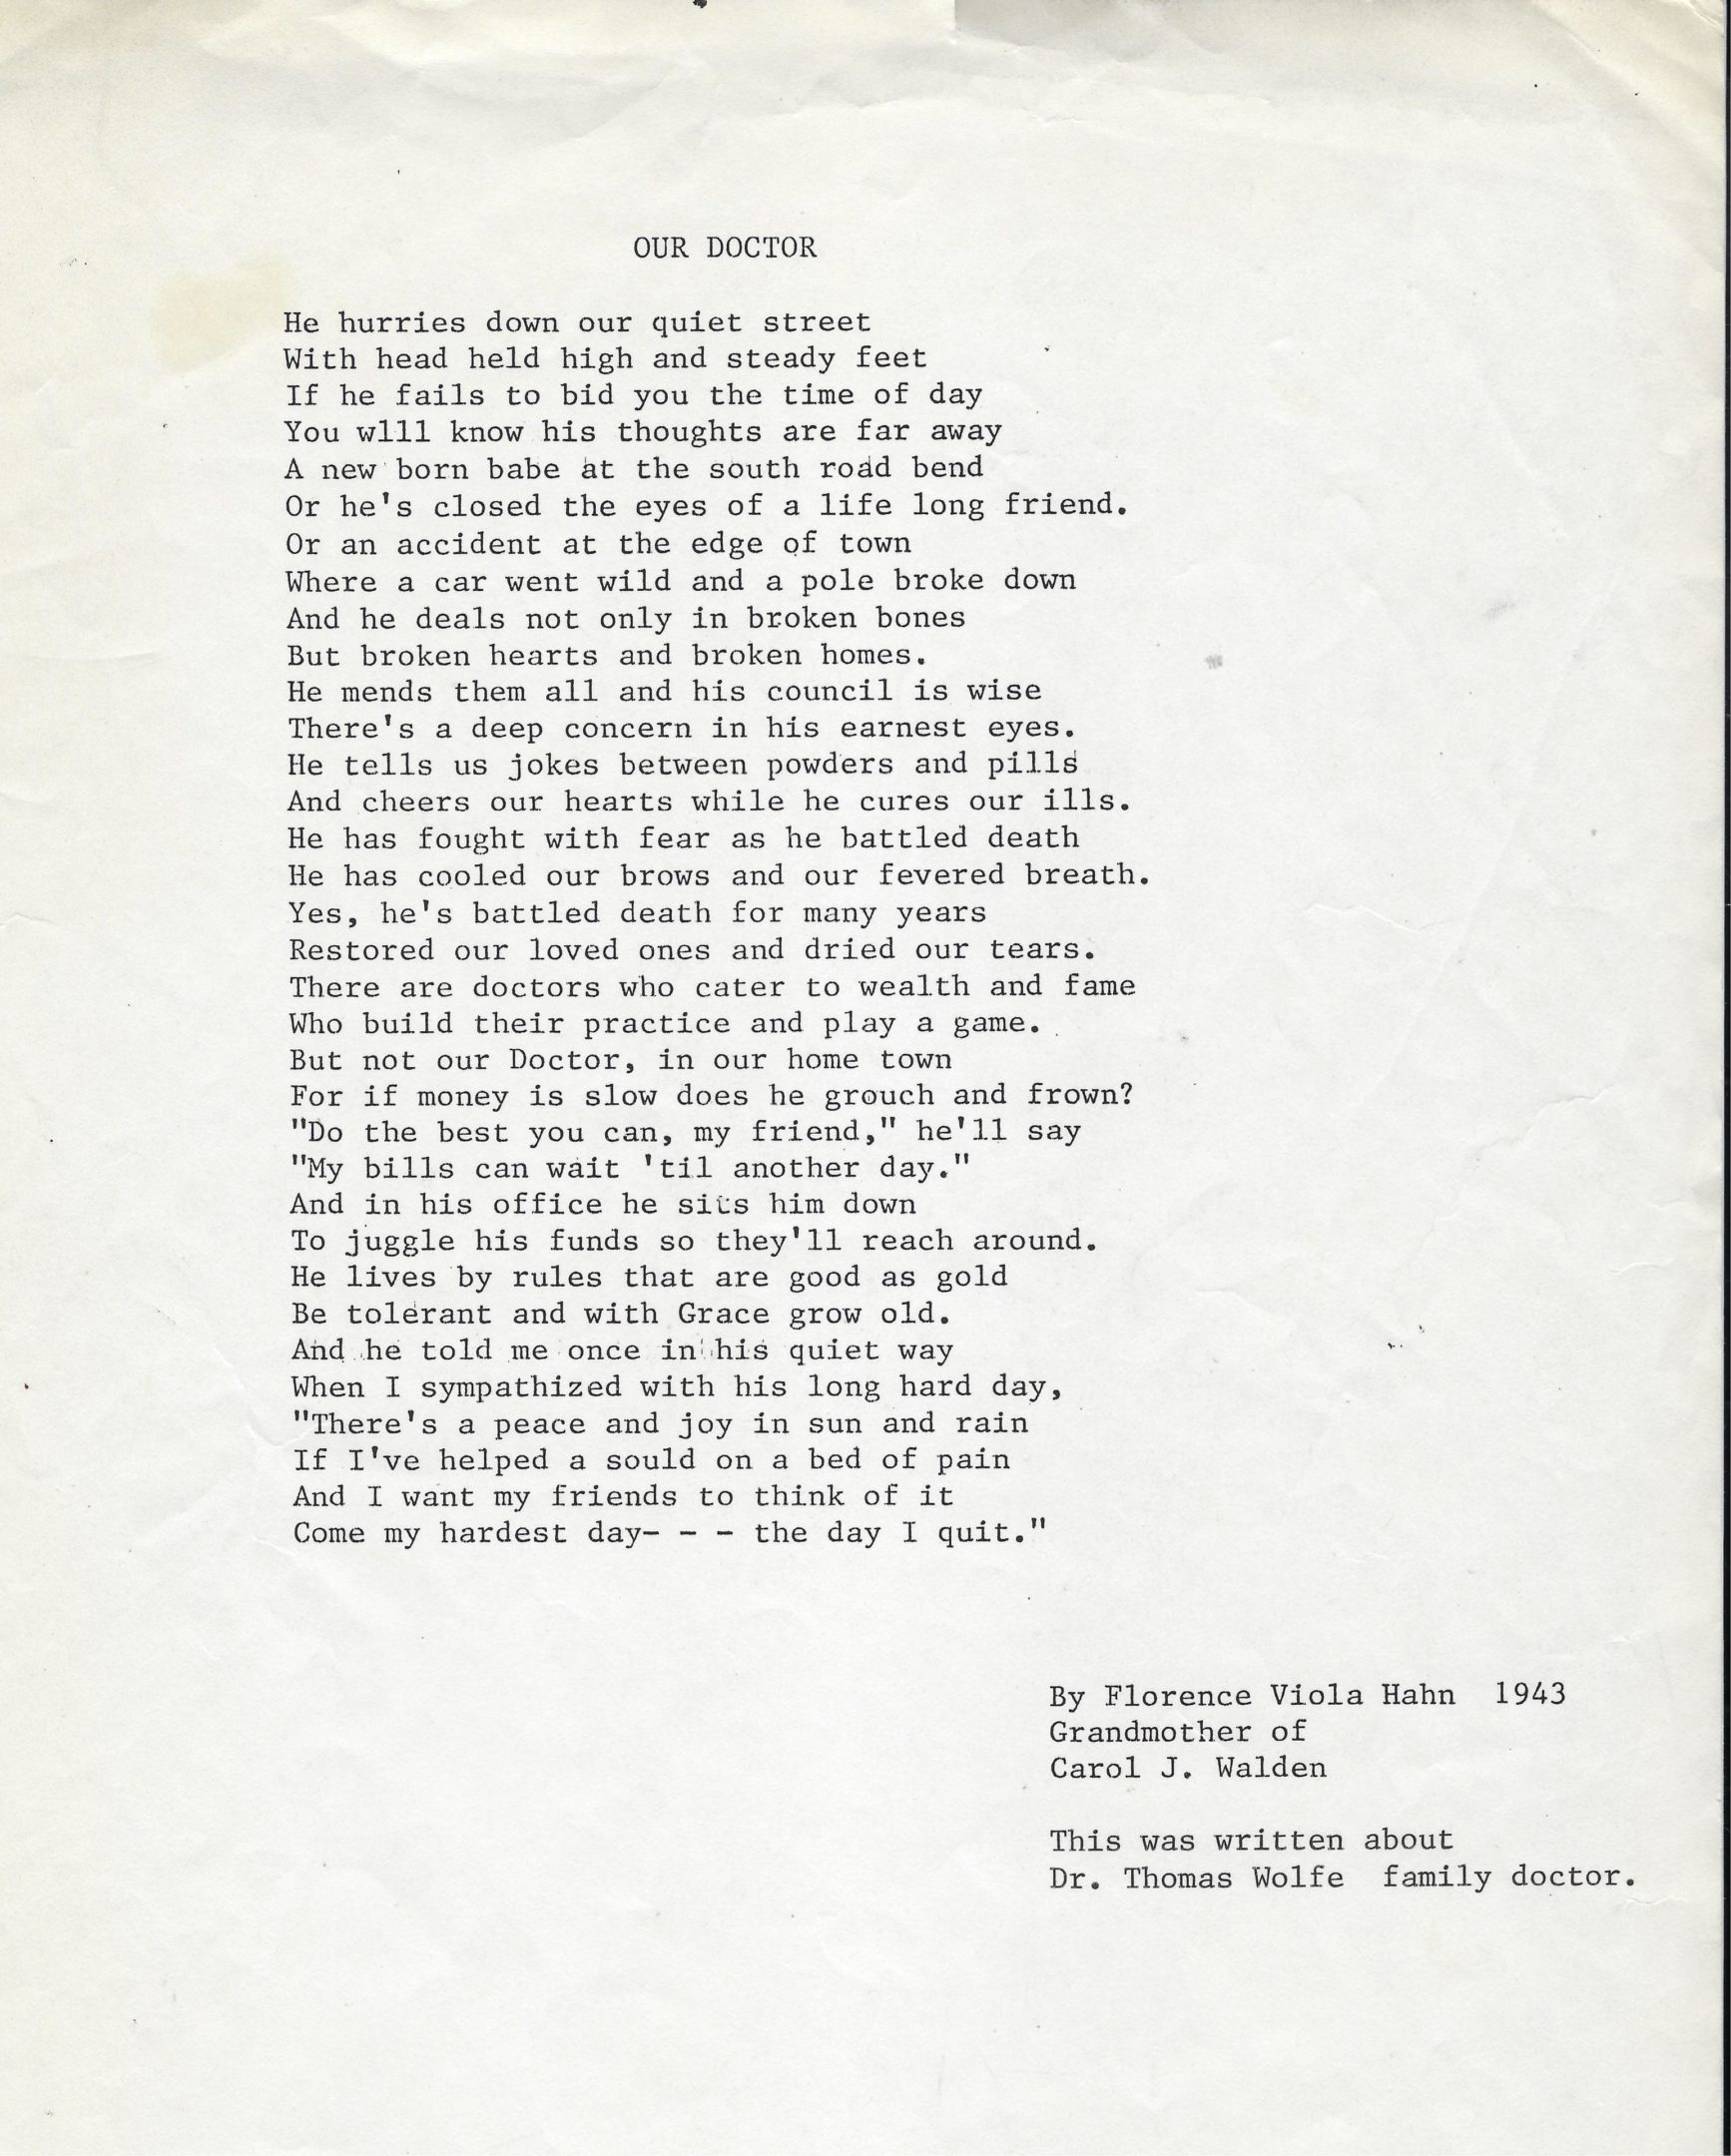 Photo of poem by Florence Viola Hahn-1943